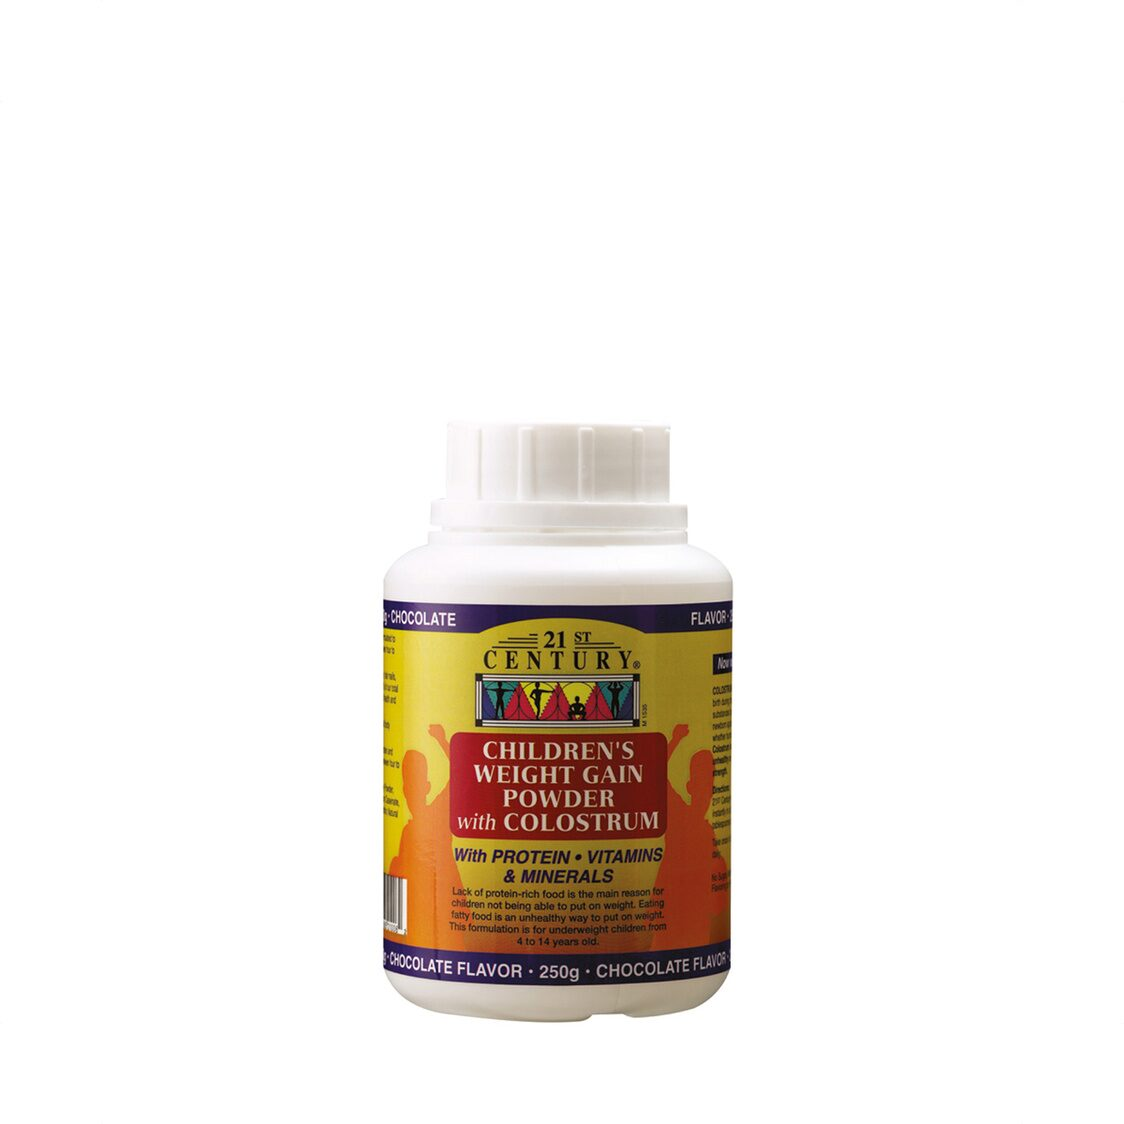 Children Weight Gain Powder 250g